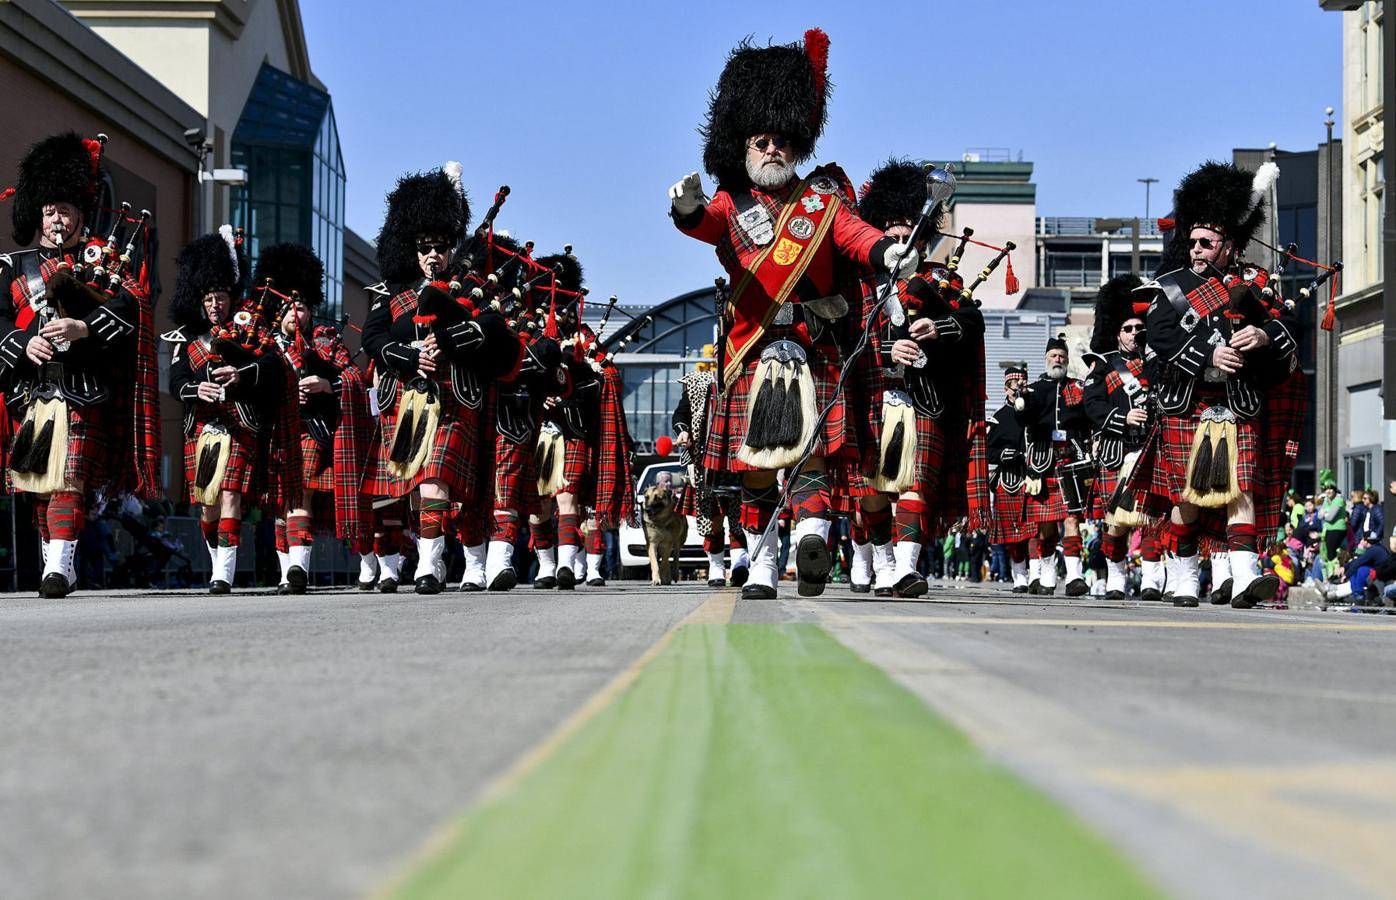 Scranton Parade Day steps off this weekend